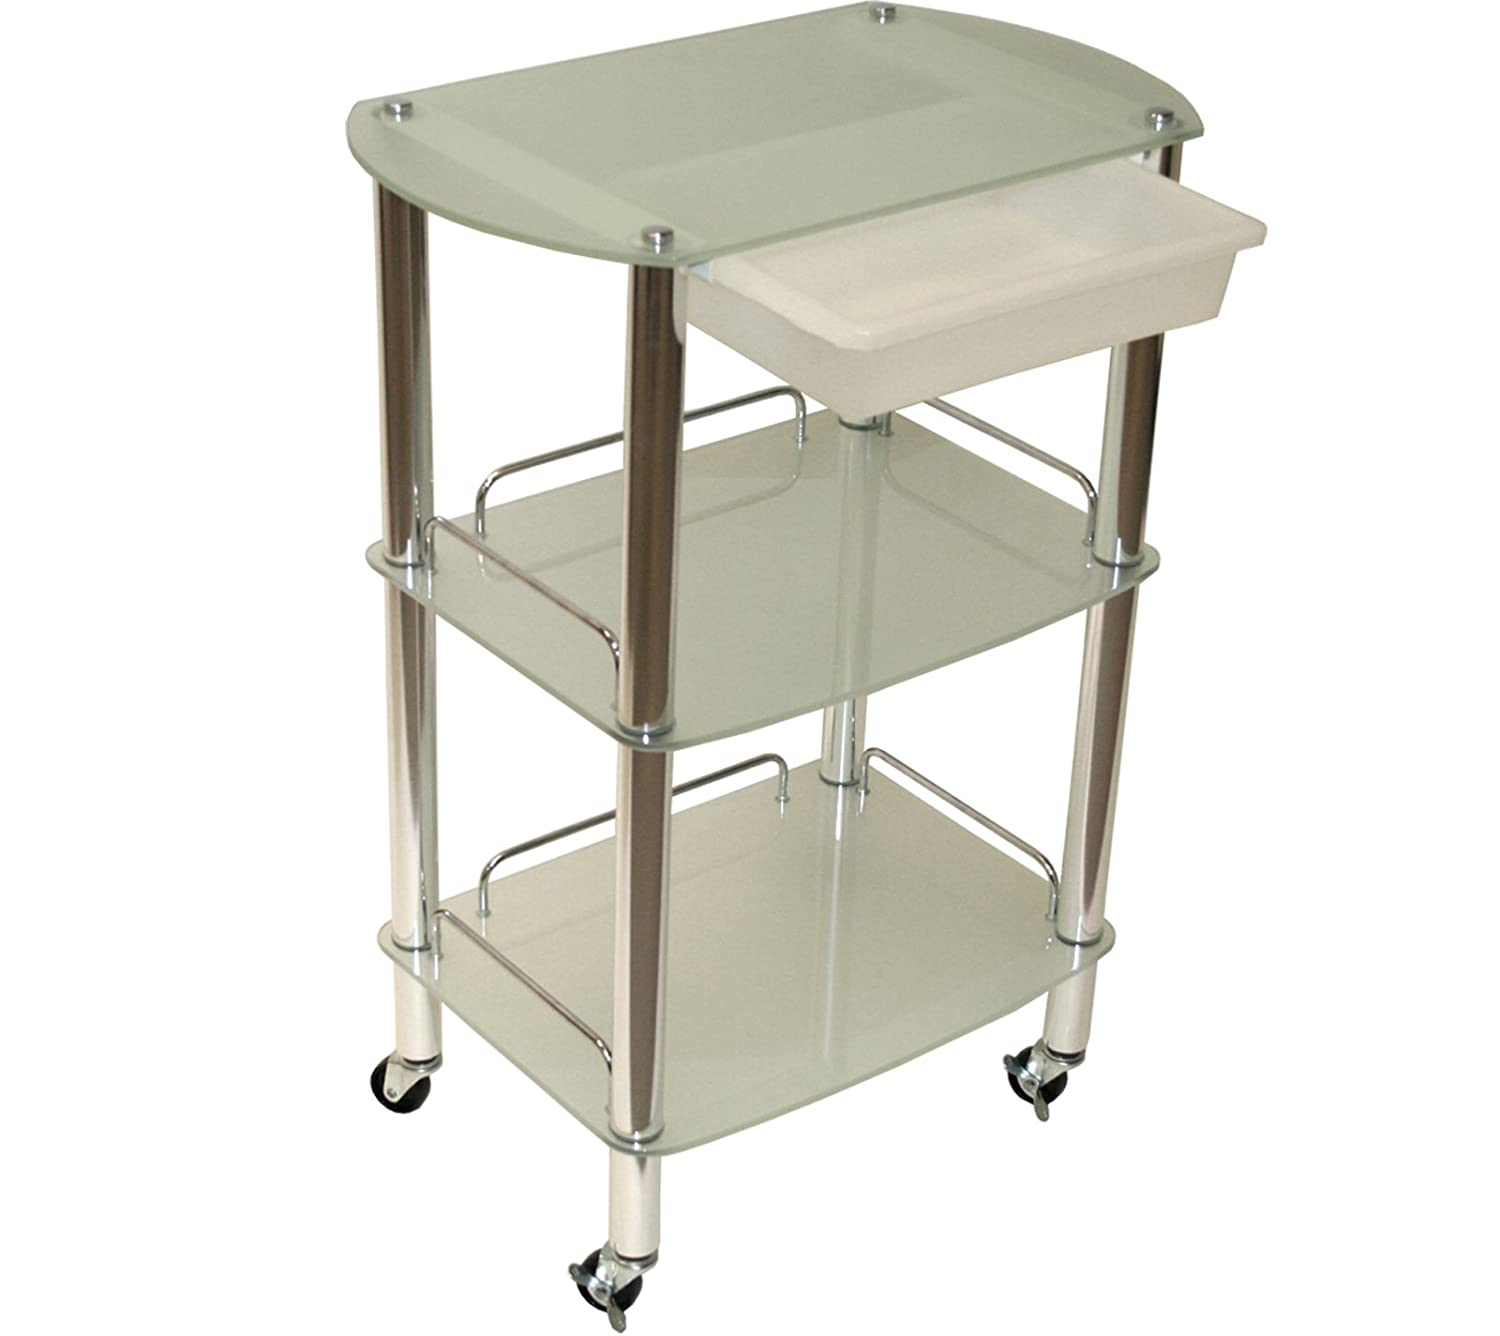 LCL Beauty Extra Large Glass Chrome Roller Trolley with Slide-Out Removable Storage Bin